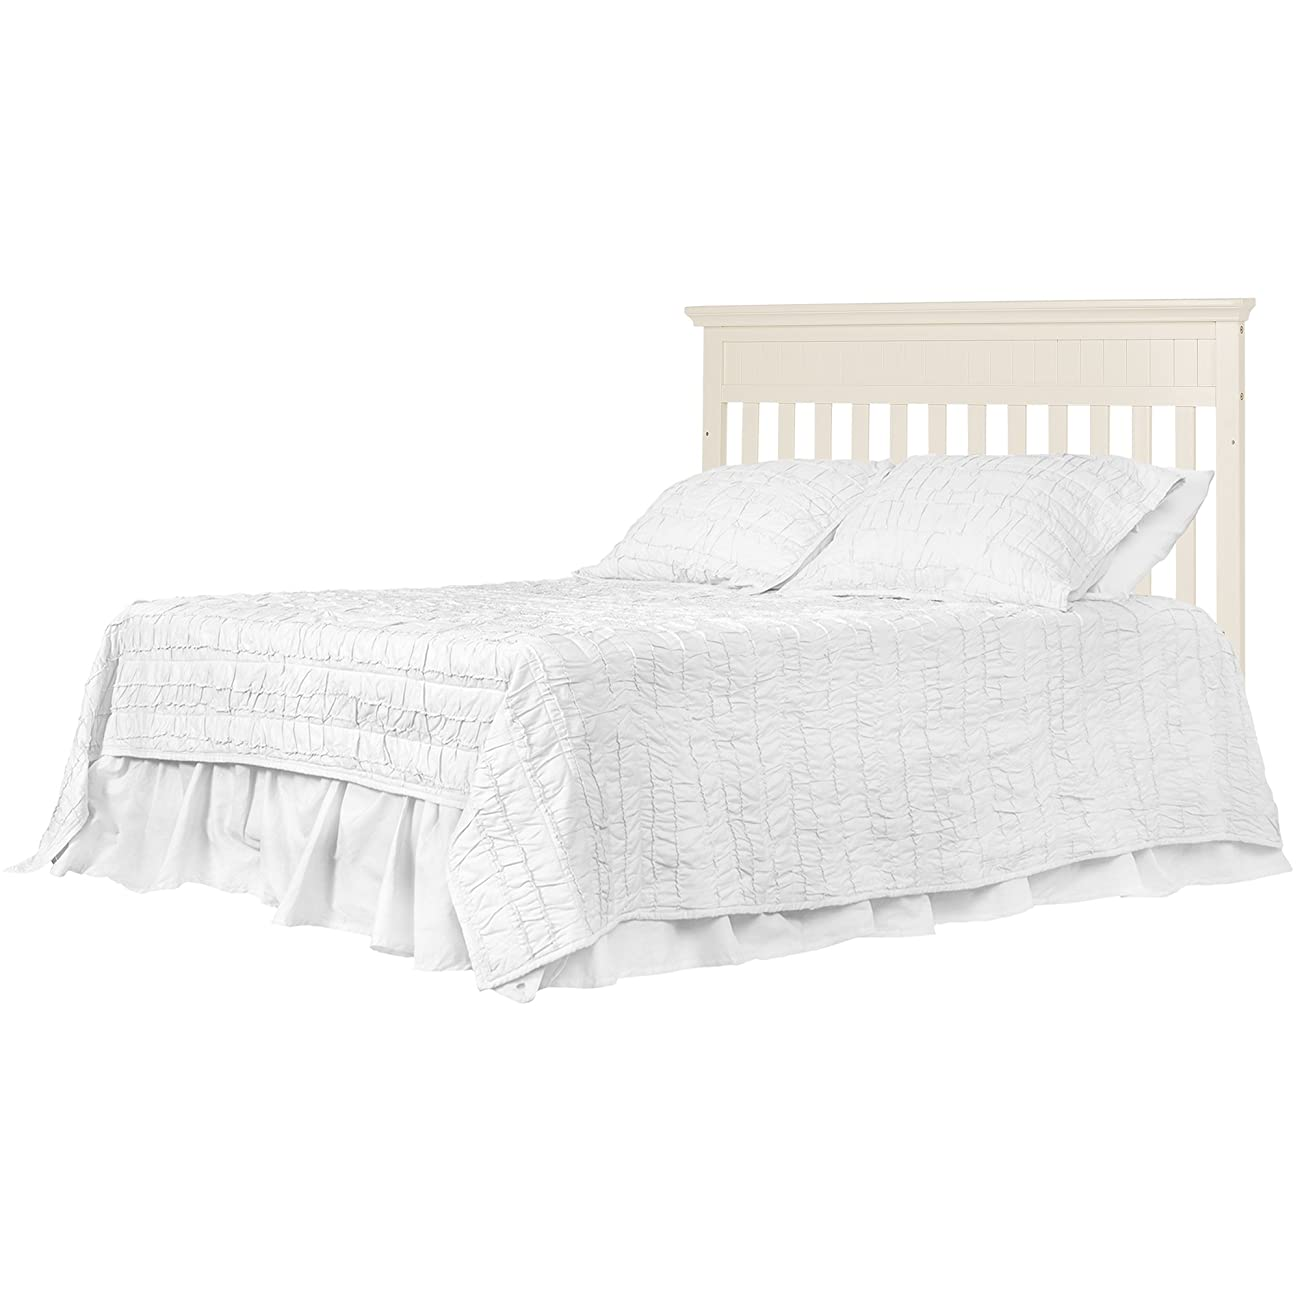 Dream On Me Chesapeake 5-In-1 Convertible Crib, French White 5